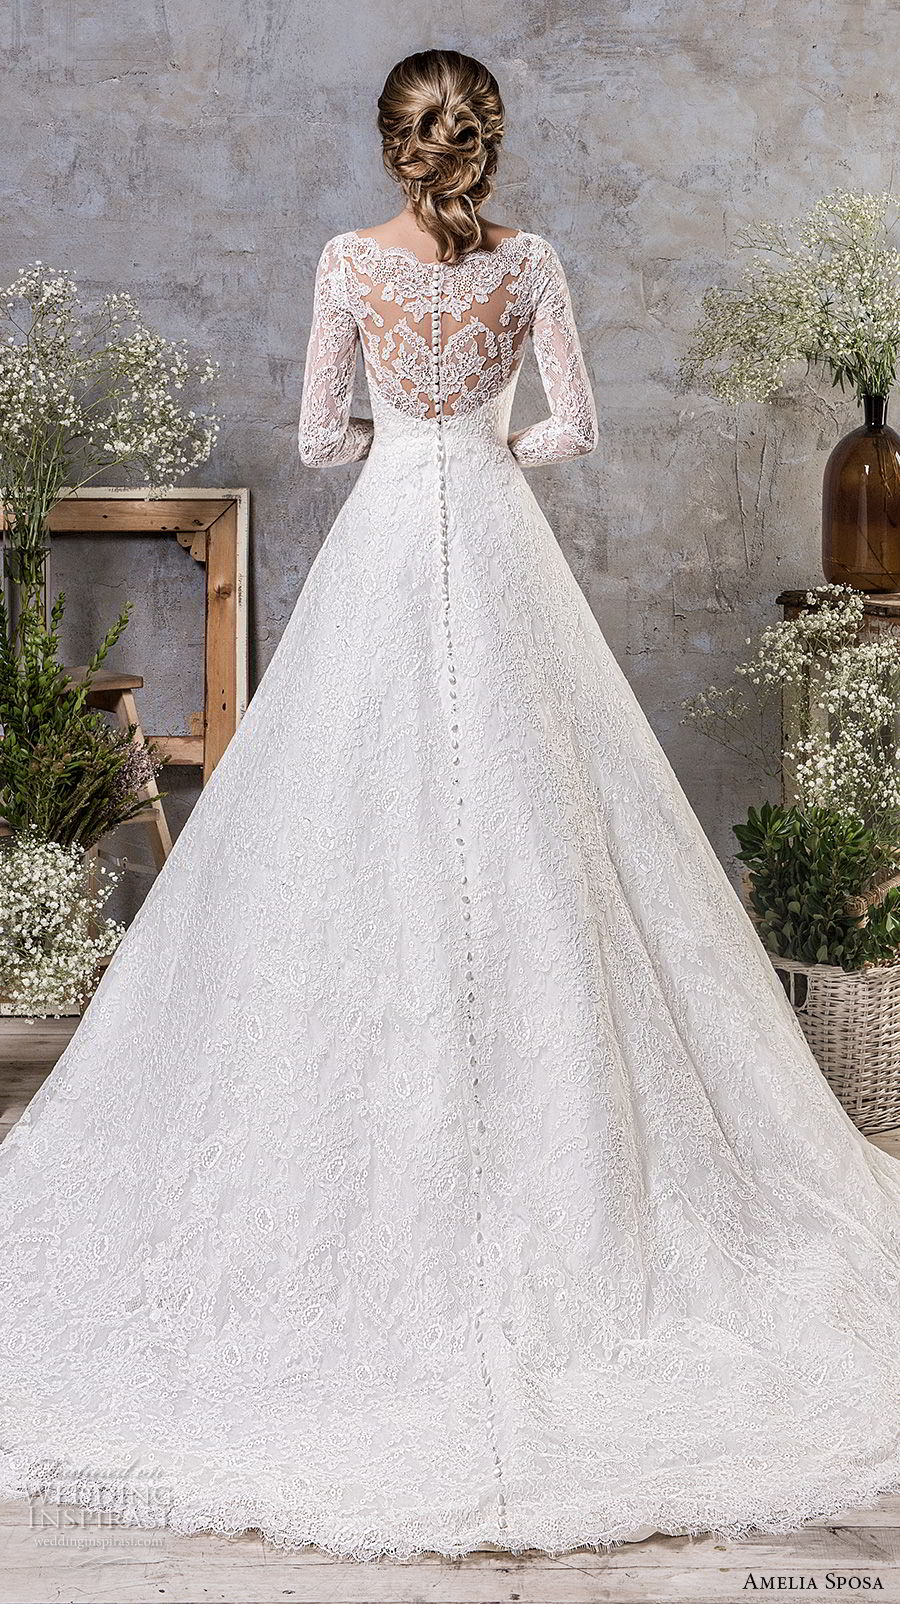 amelia sposa fall 2018 bridal long sleeves illusion jewel sweetheart neckline full embellishment elegant princess a line wedding dress lace back chapel train (17) bv